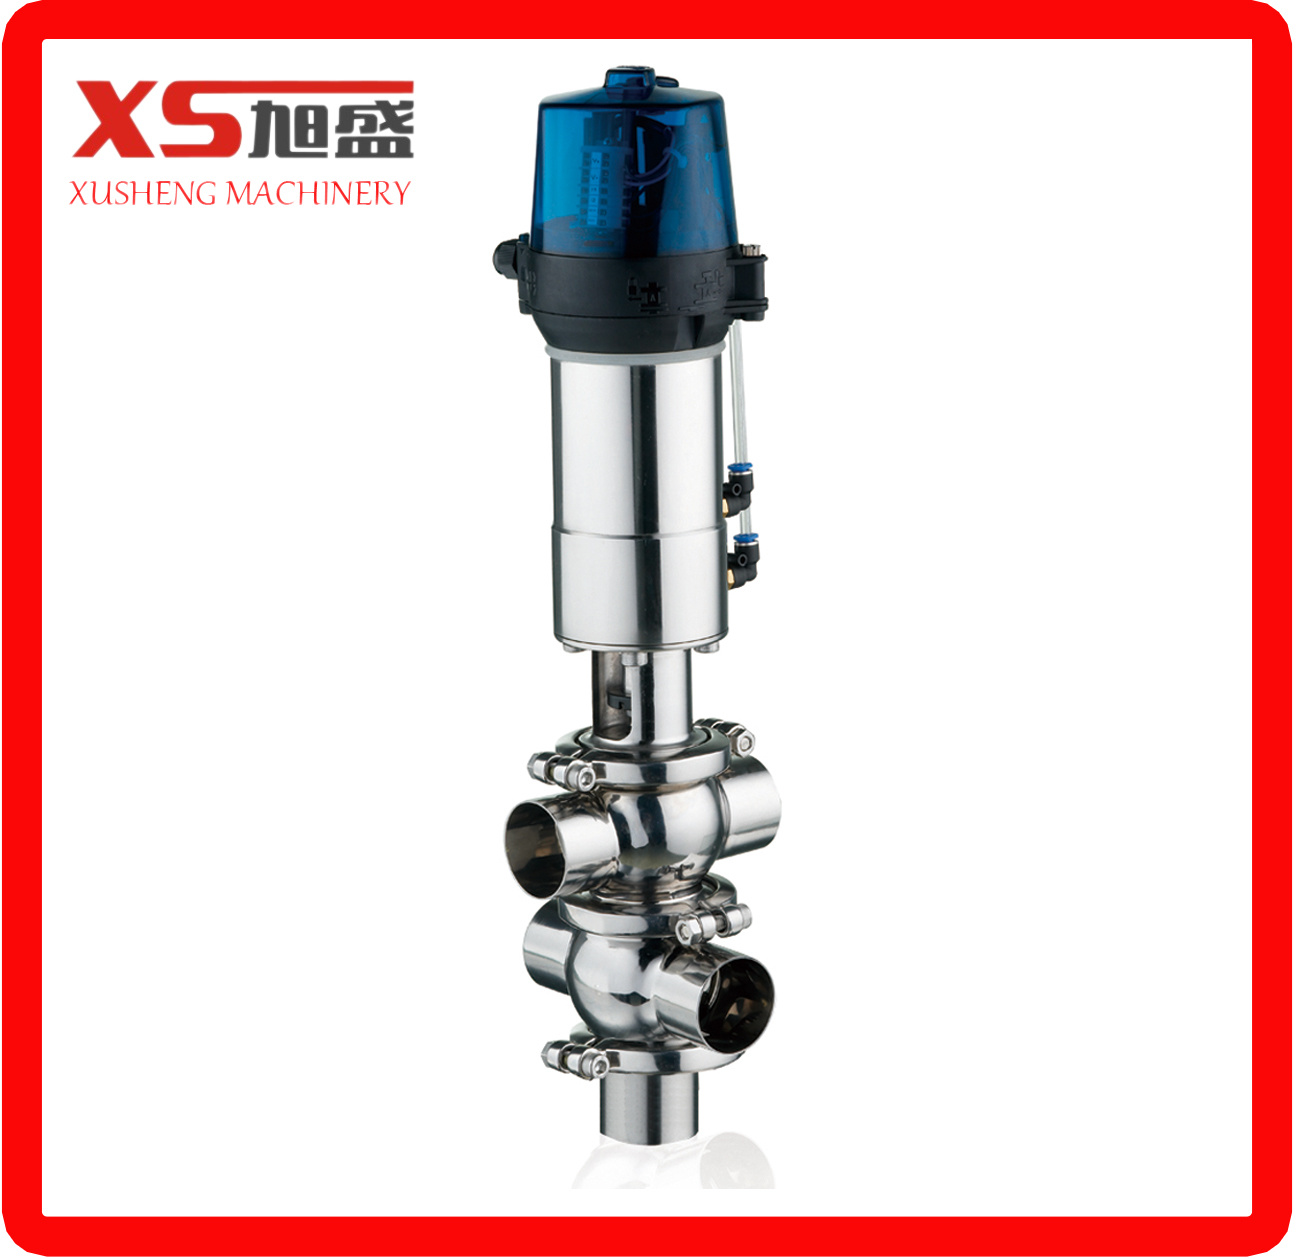 Sanitary Hygienic Stainless Steel Ss304 Ss316L Pneumatic Diverter Flow Valve